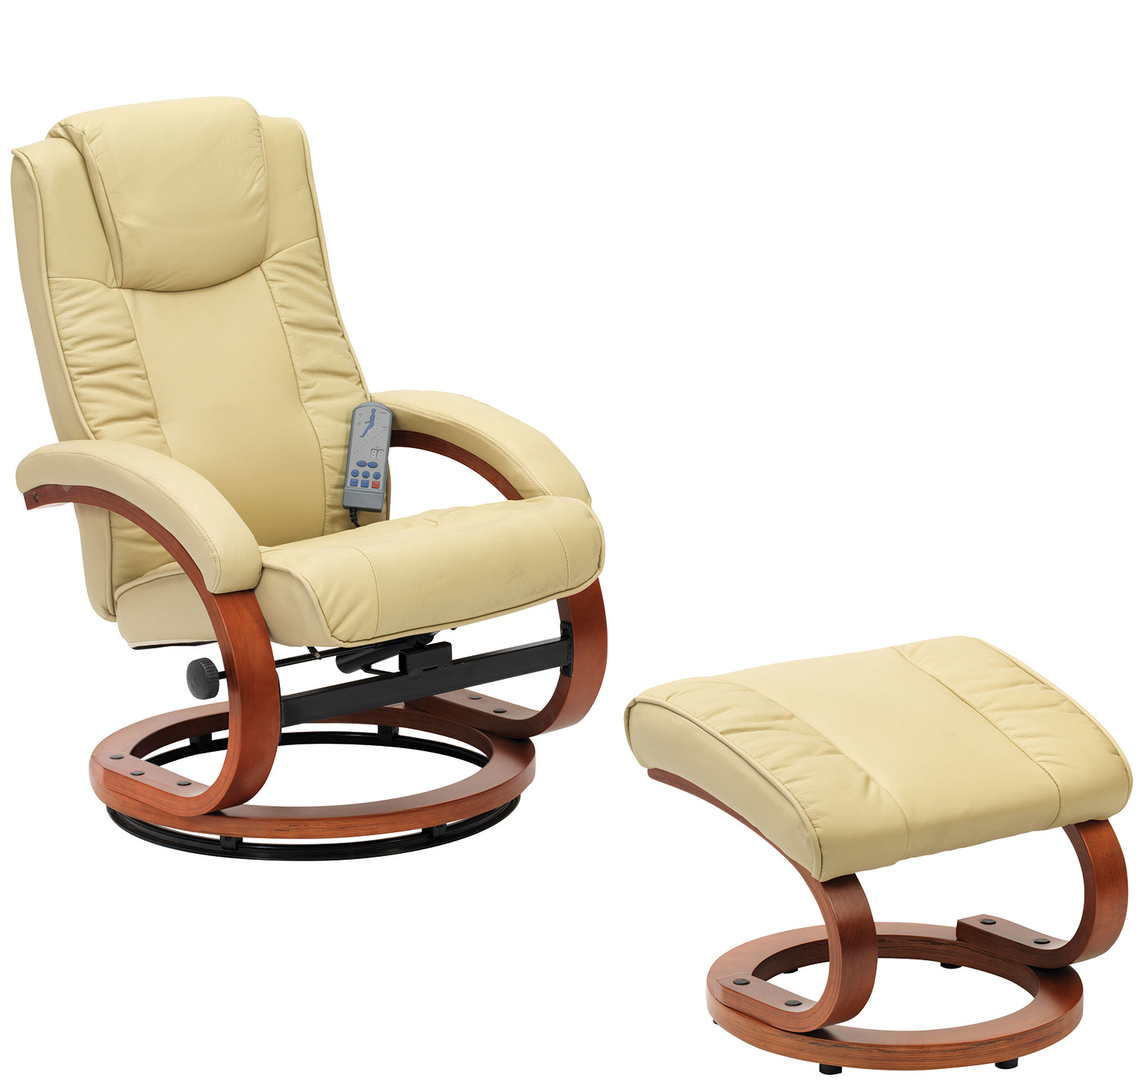 furniture | massage-chairs